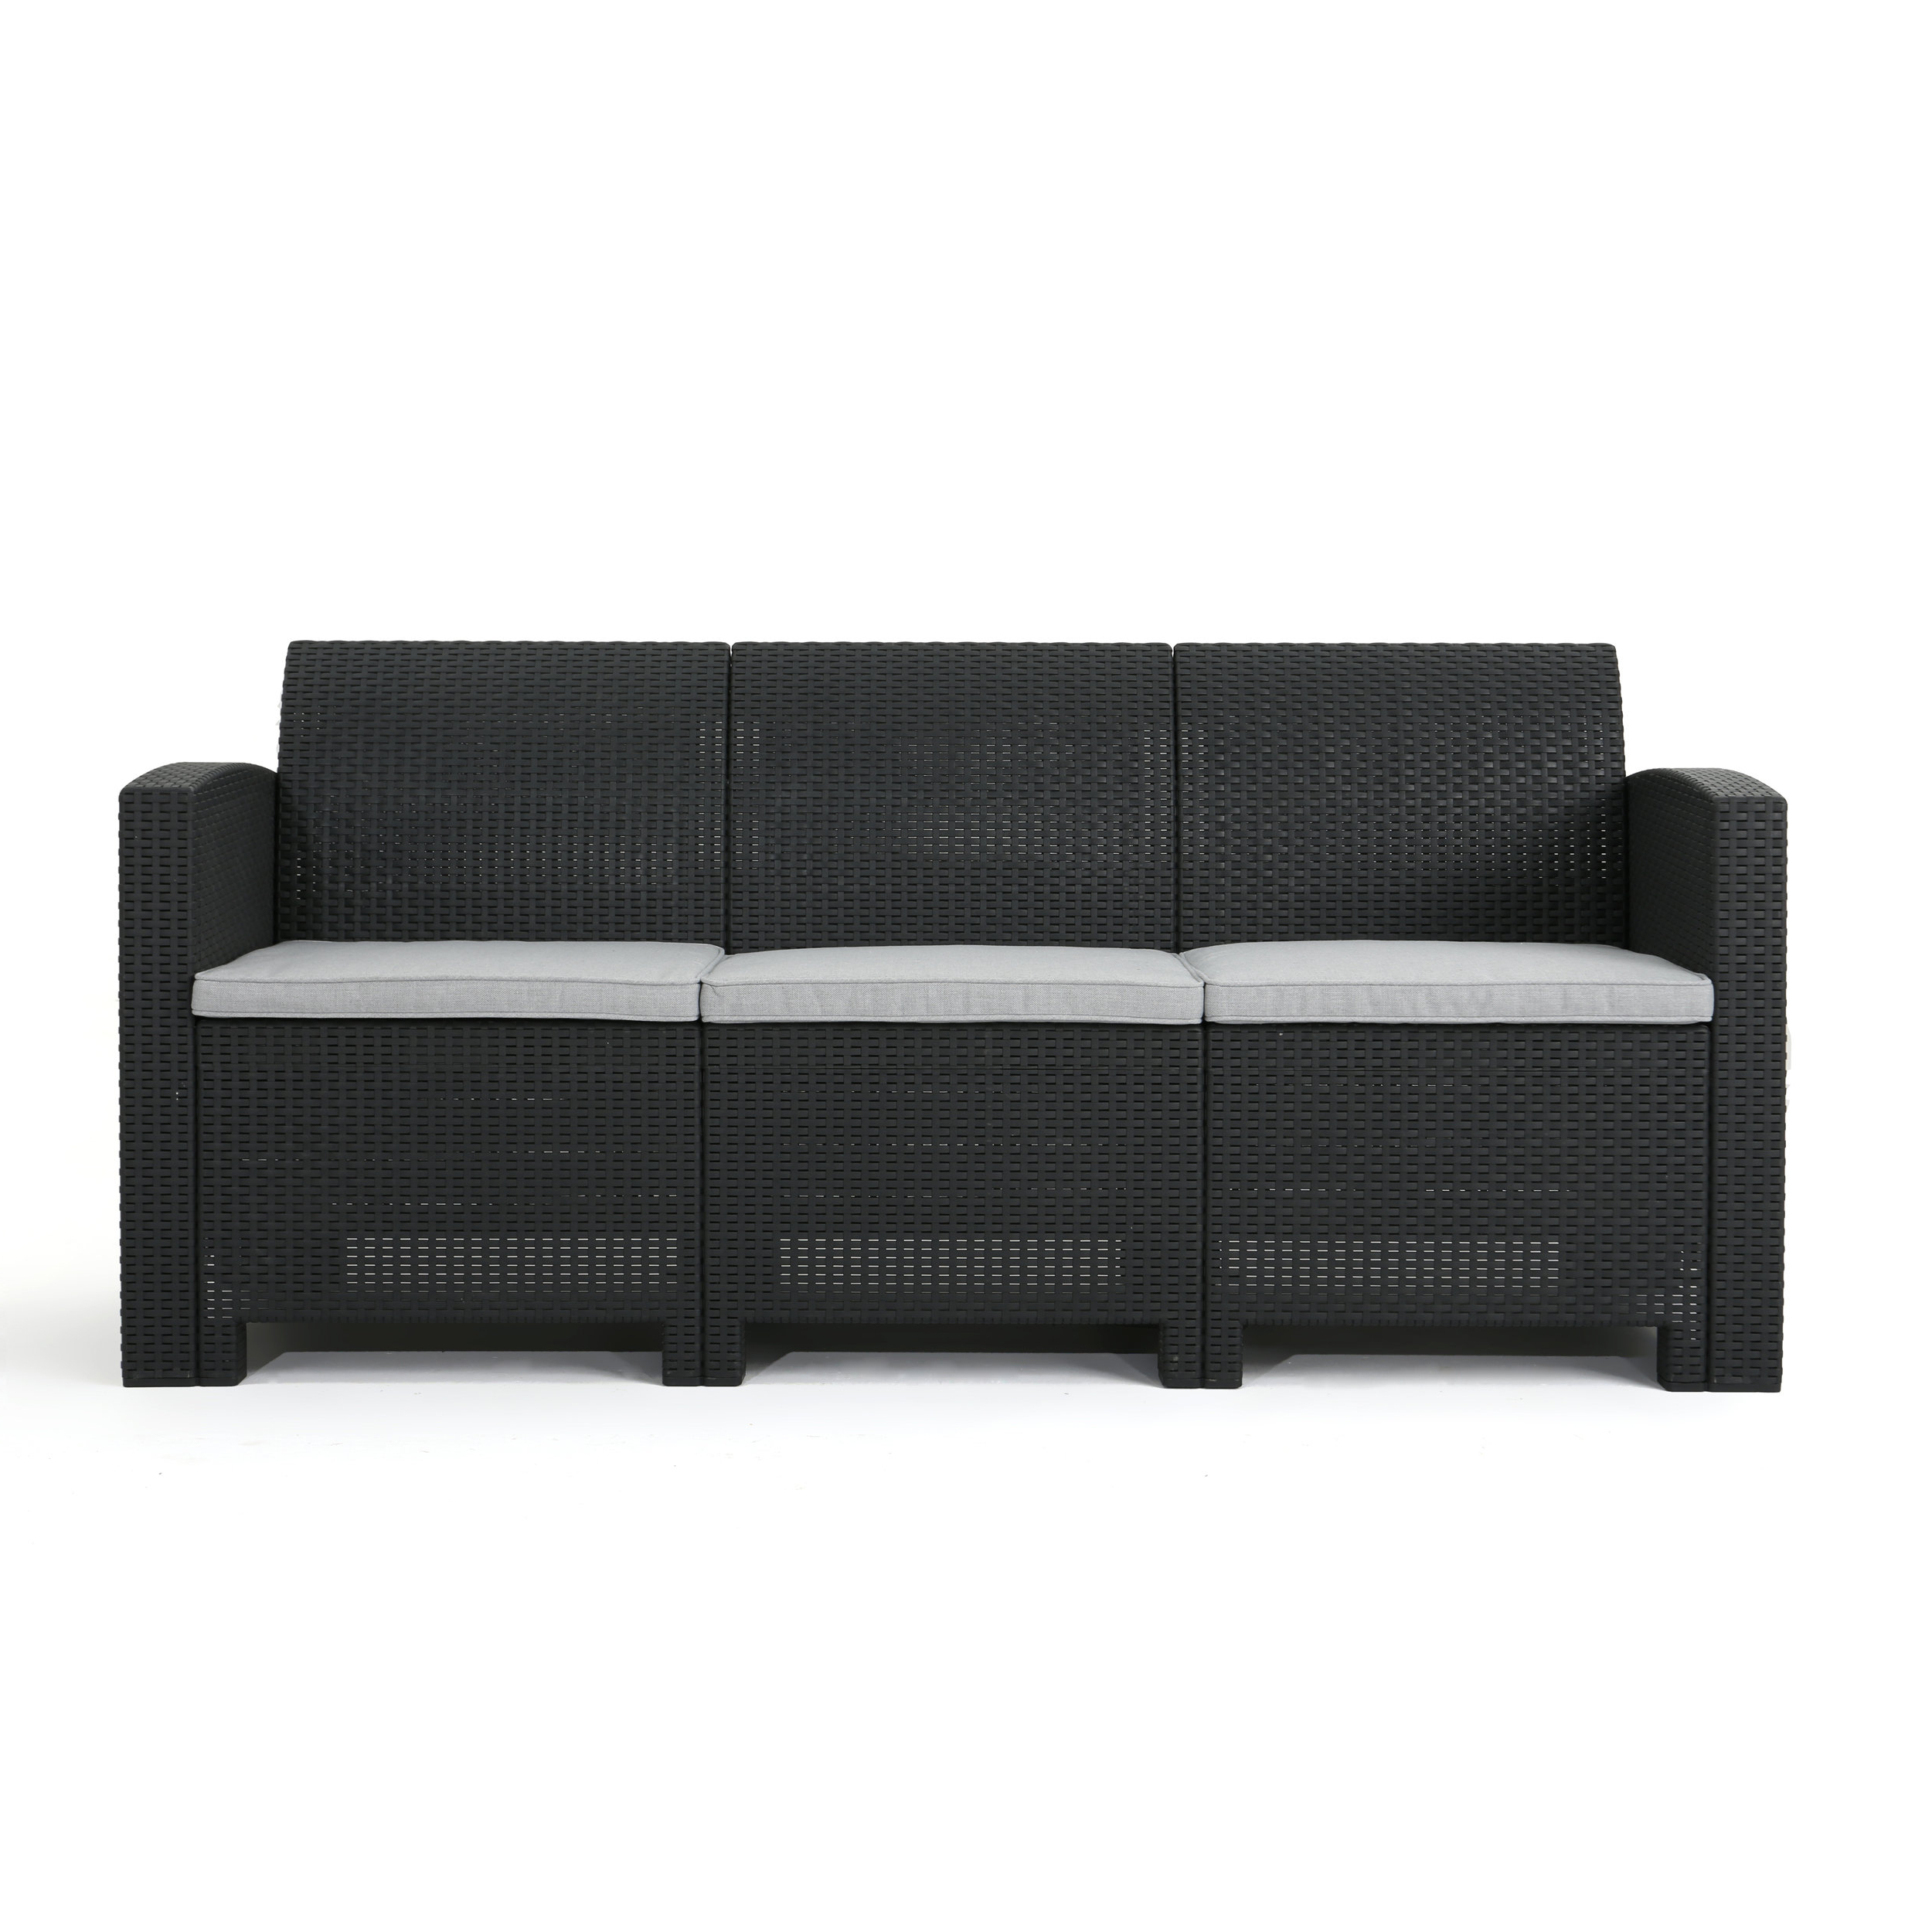 Yoselin Patio Sofa With Cushions For Well Known Belton Patio Sofas With Cushions (View 25 of 25)